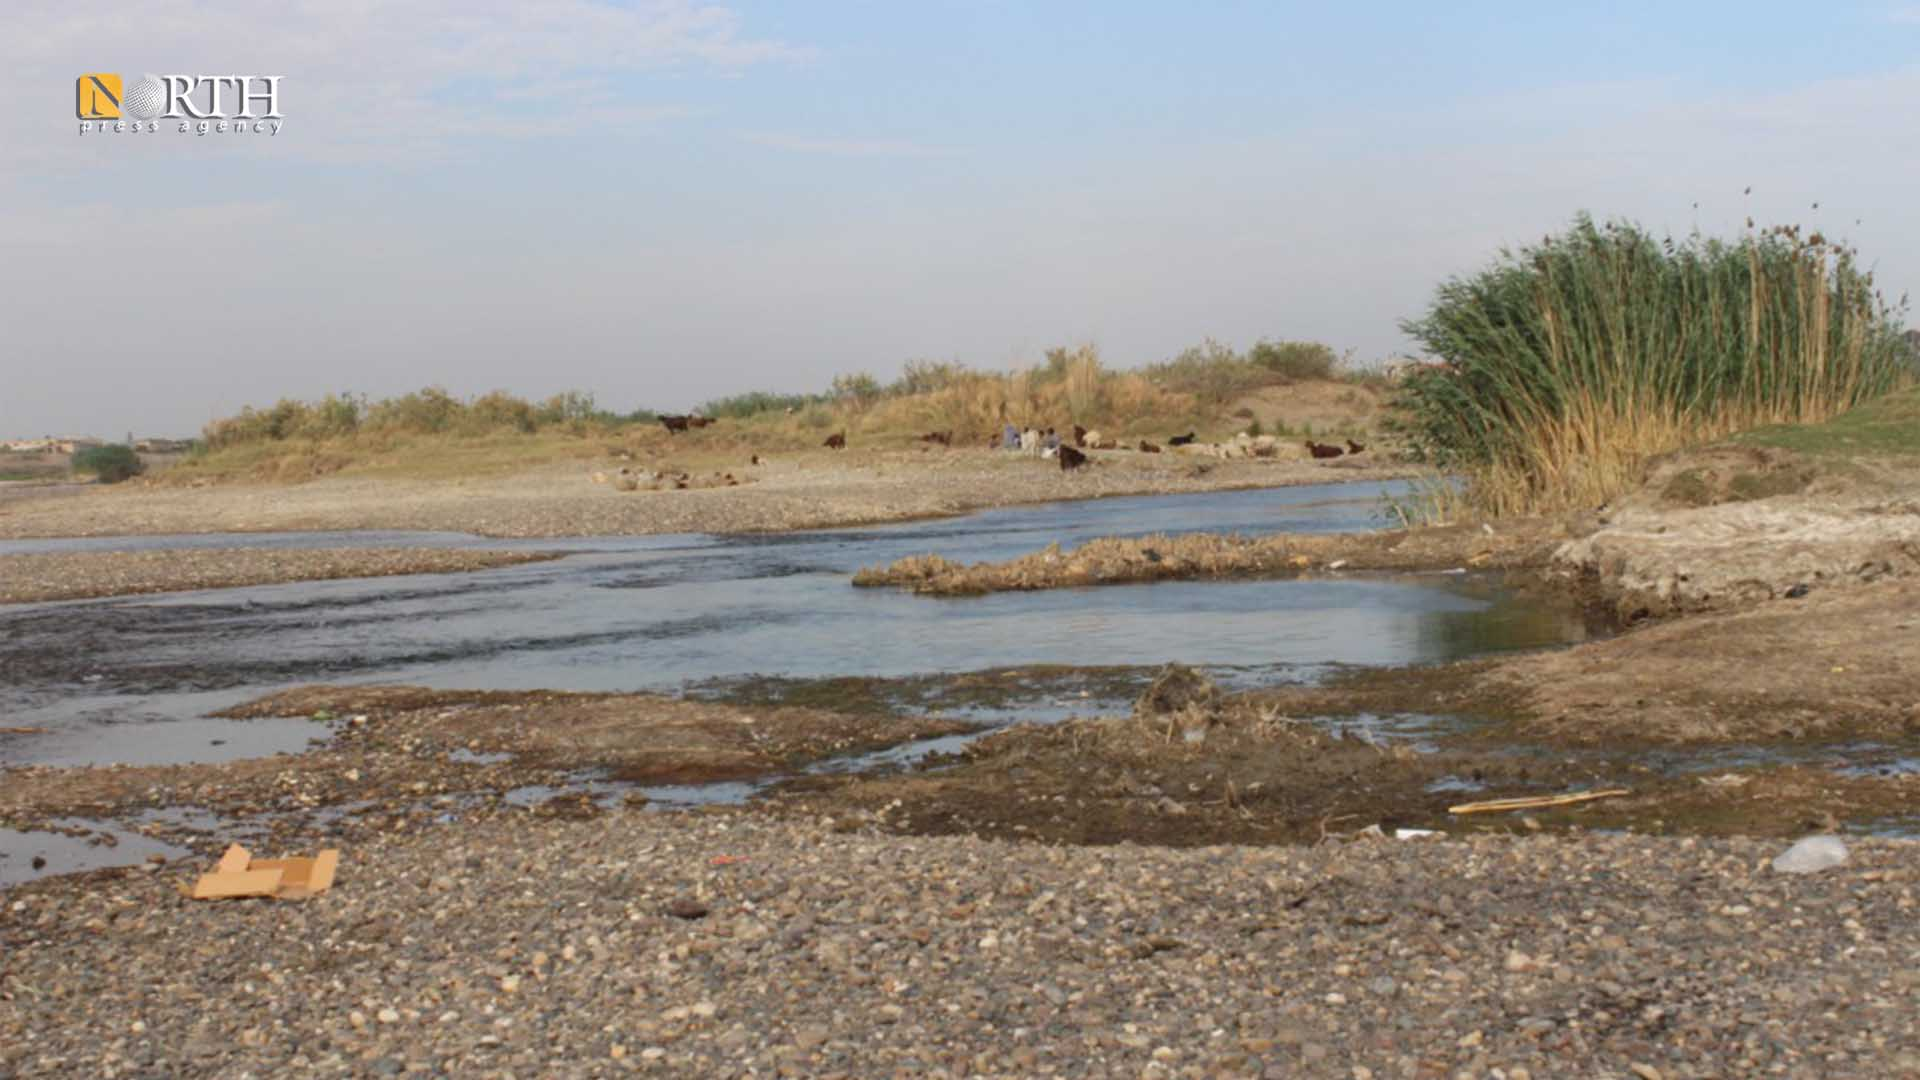 The Euphrates River has turned into small streams during its passage near Raqqa – North Press